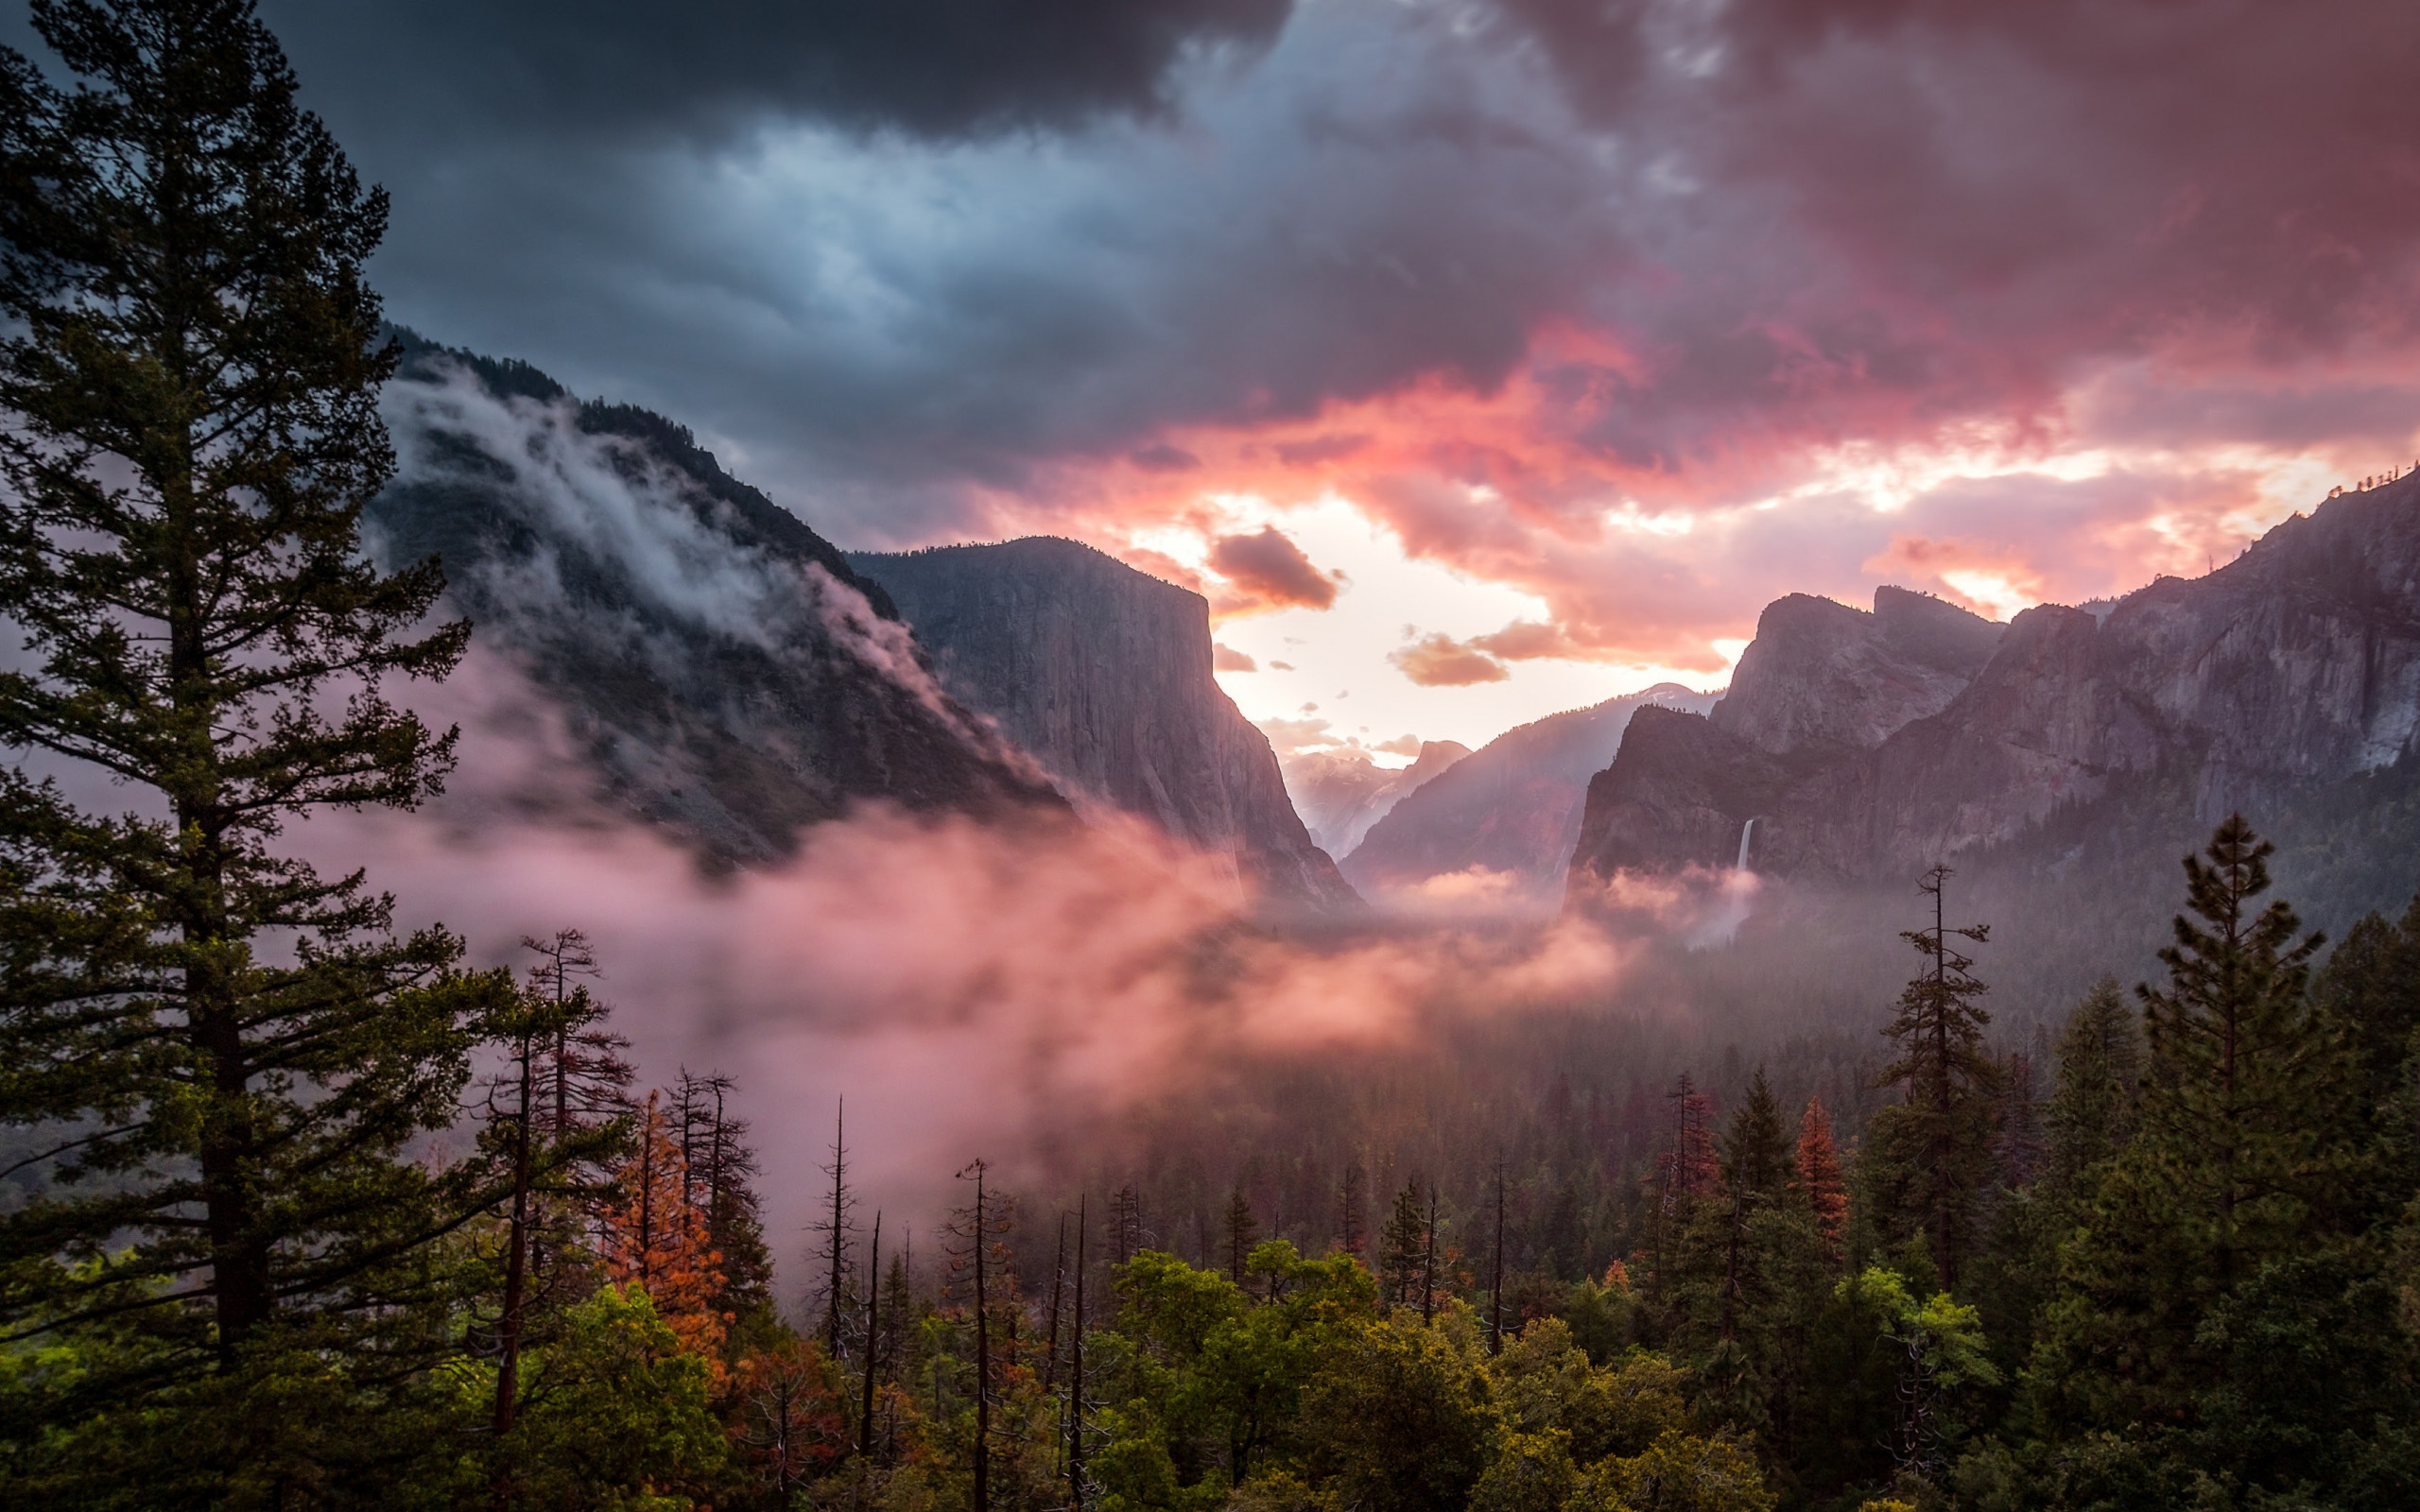 Landscape from Yosemite National Park | 2560x1600 wallpaper